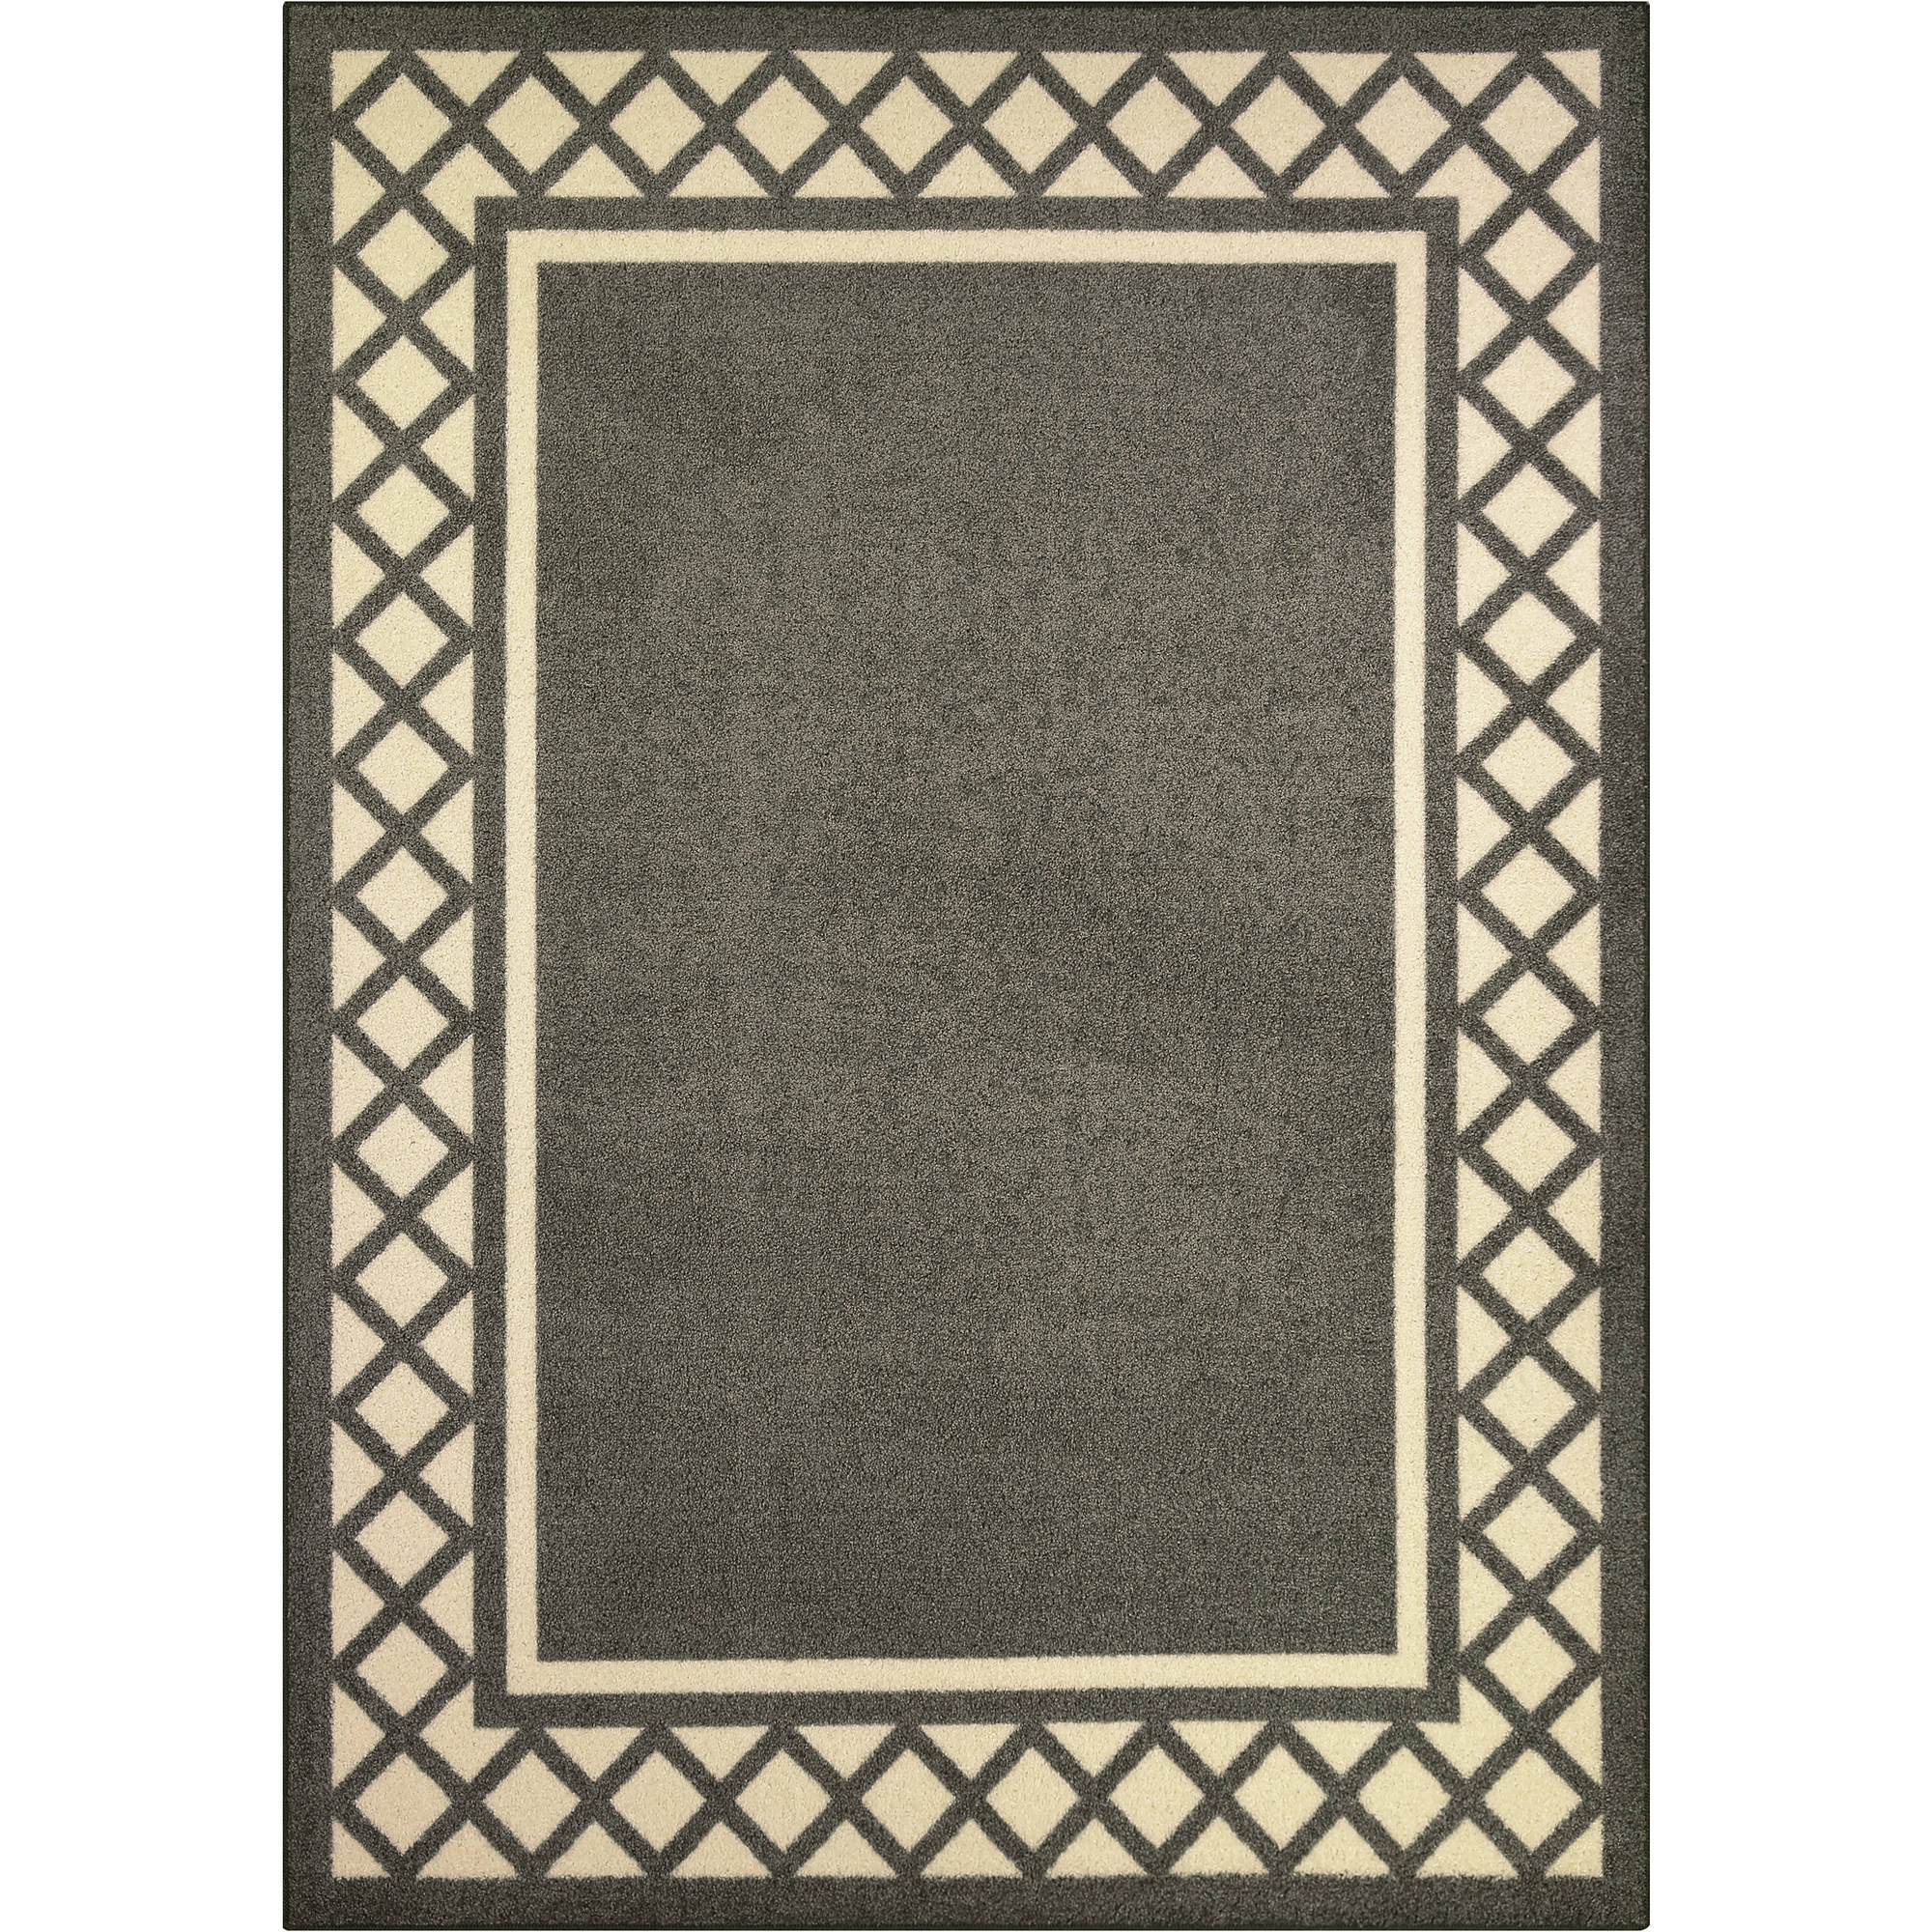 Mainstays Kids Print Border Area Rug